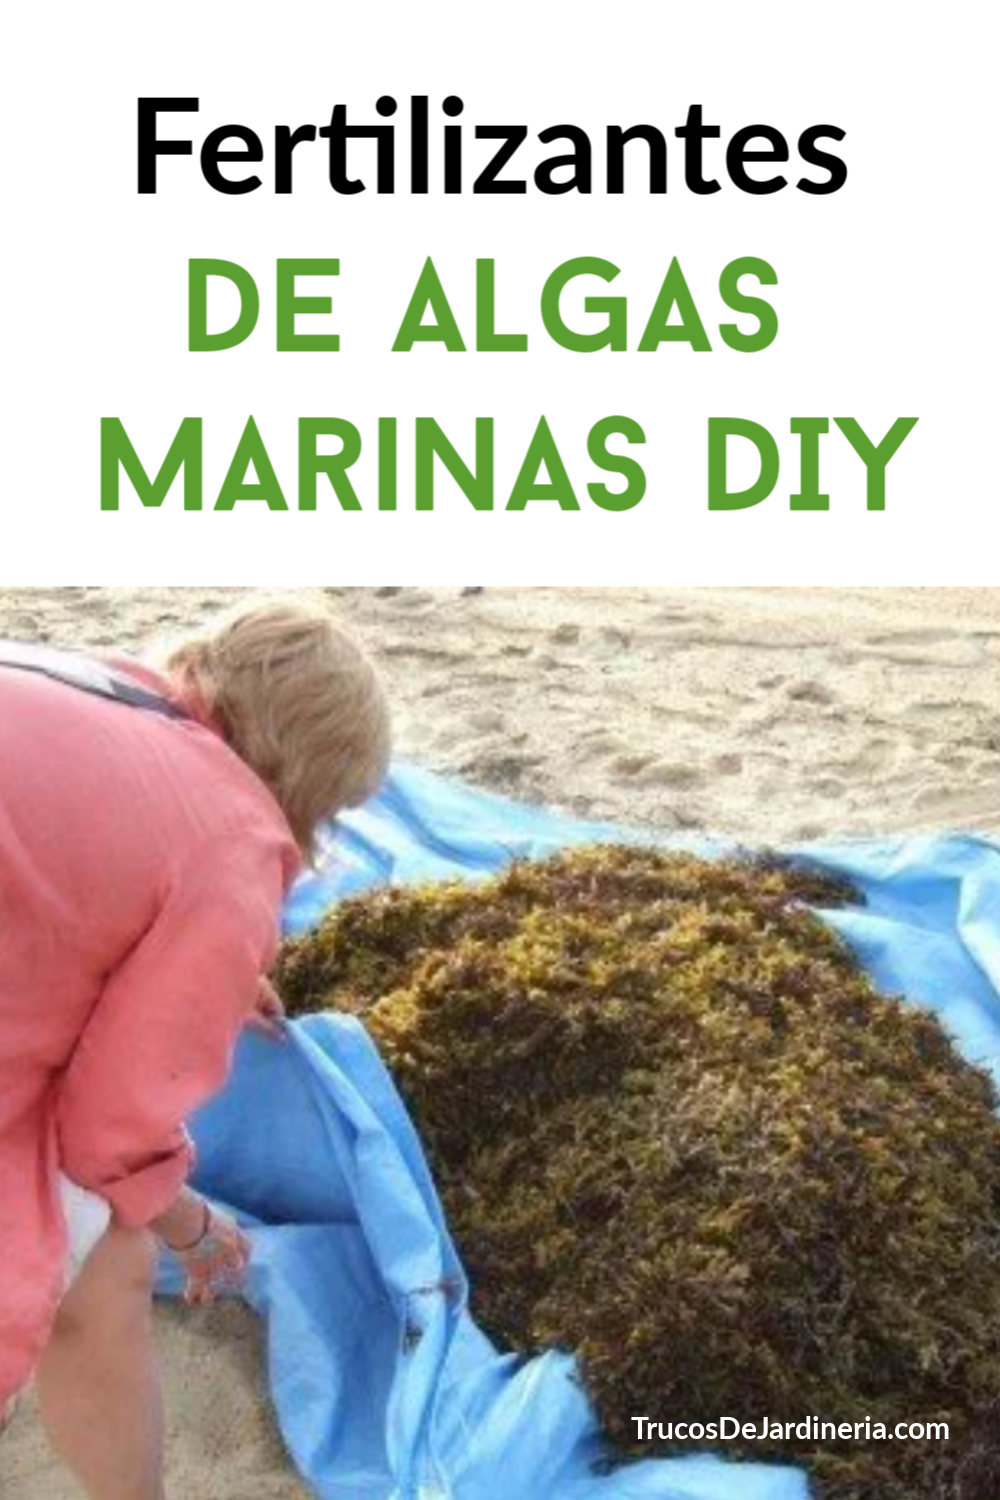 Fertilizante de Algas Marinas DIY